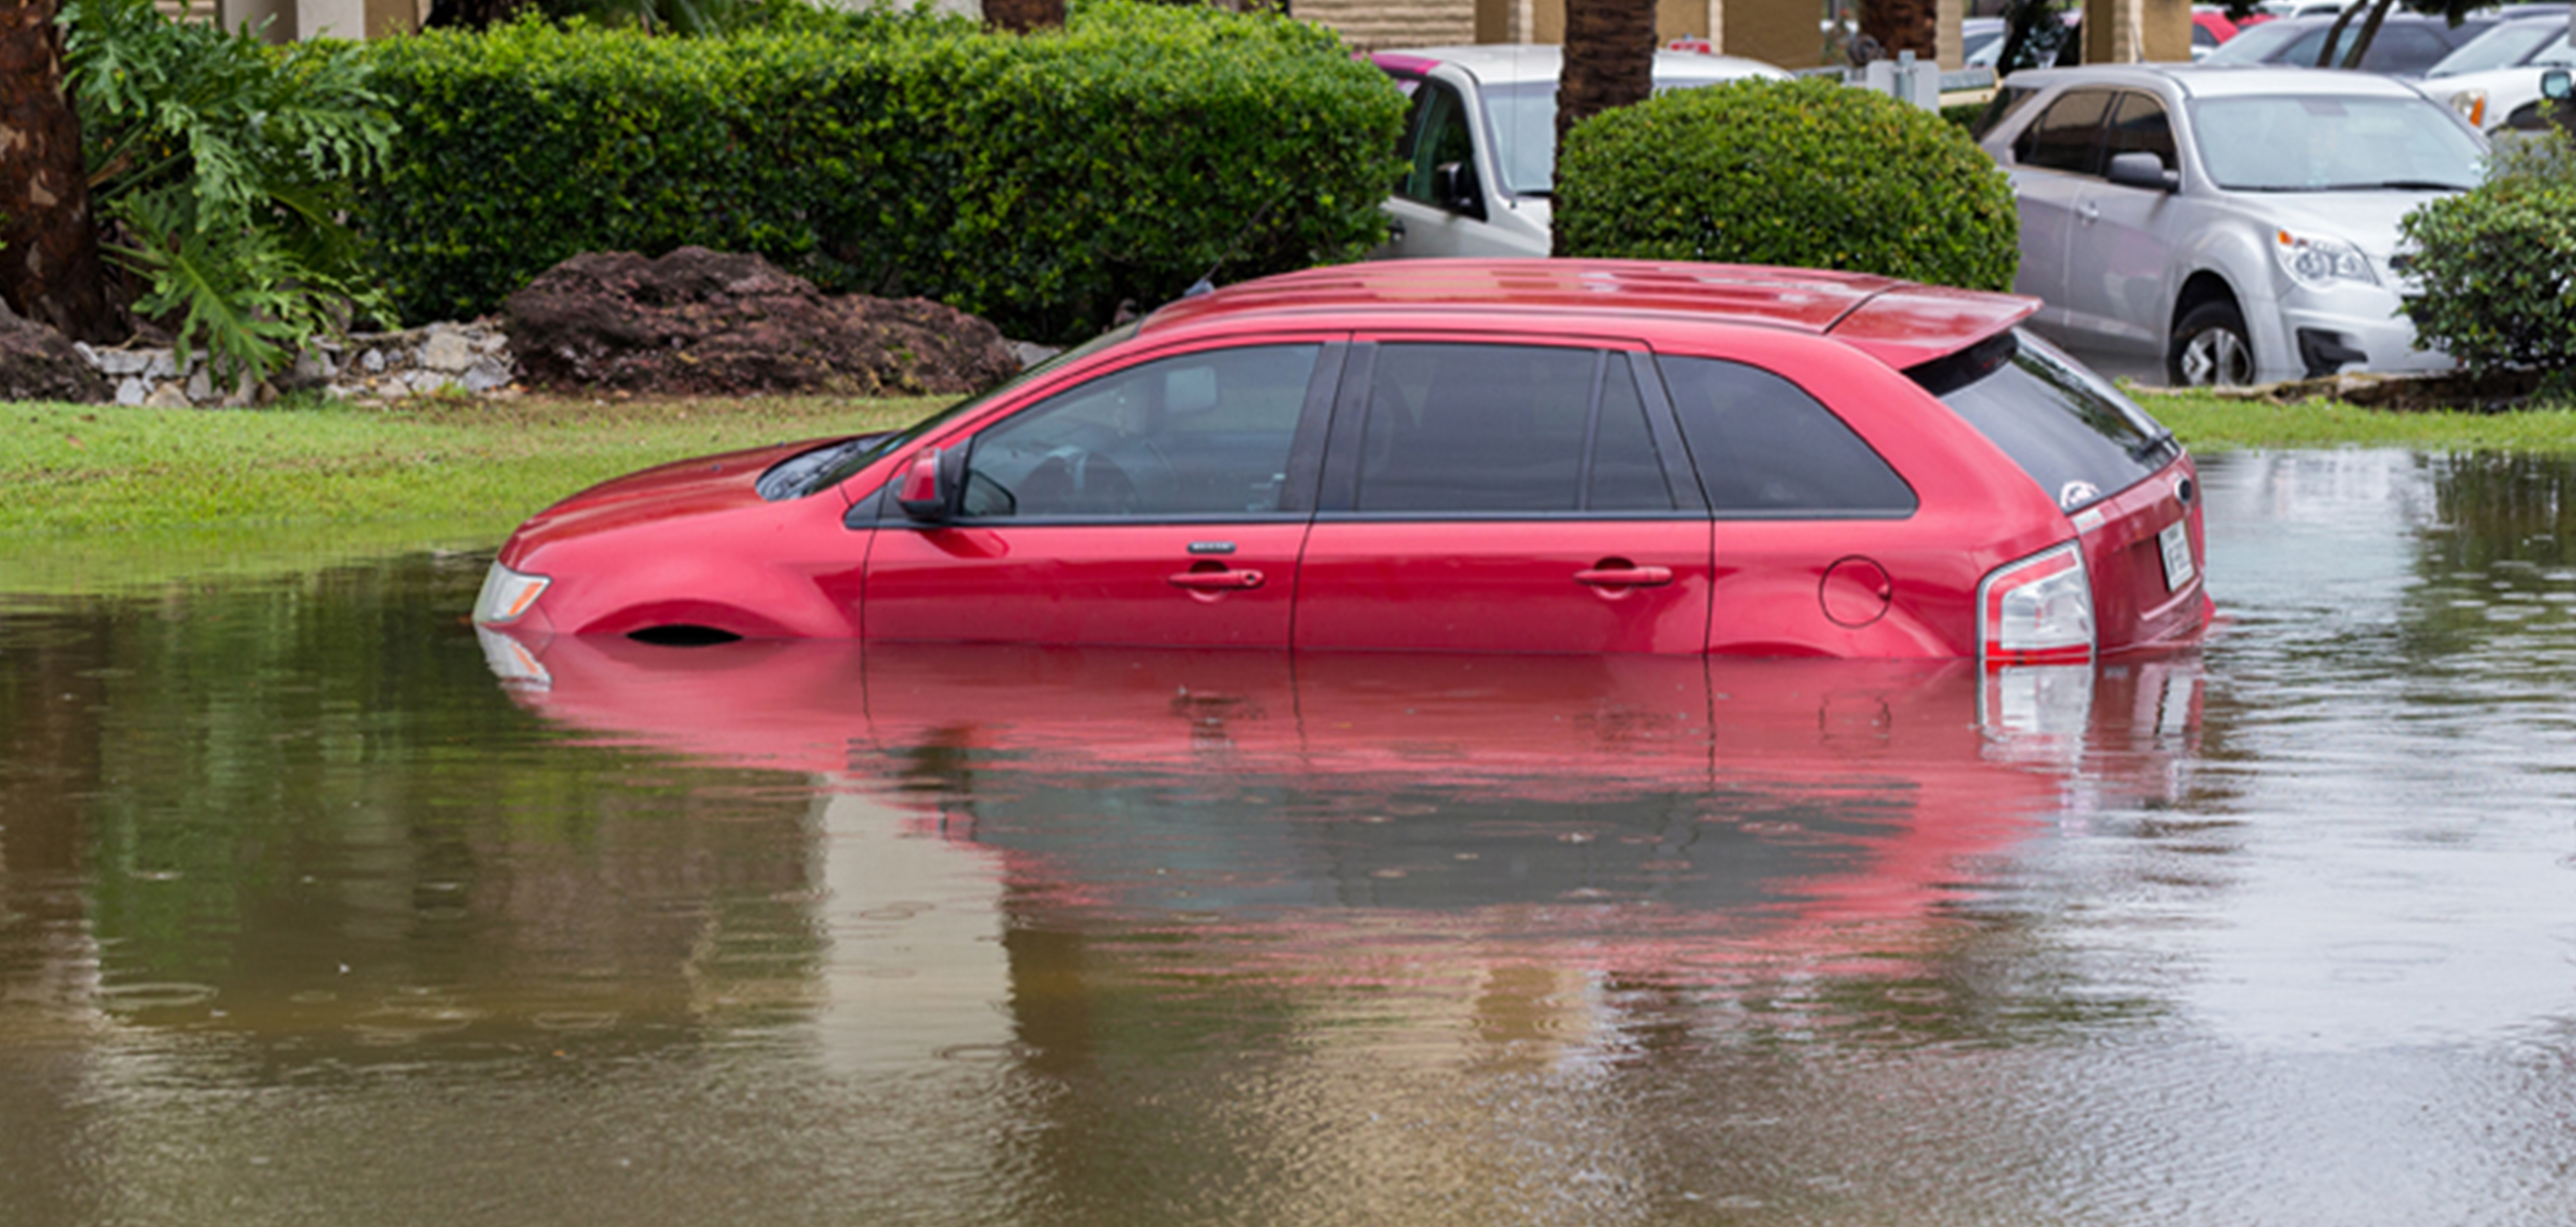 What To Do If You're Car Gets Flooded